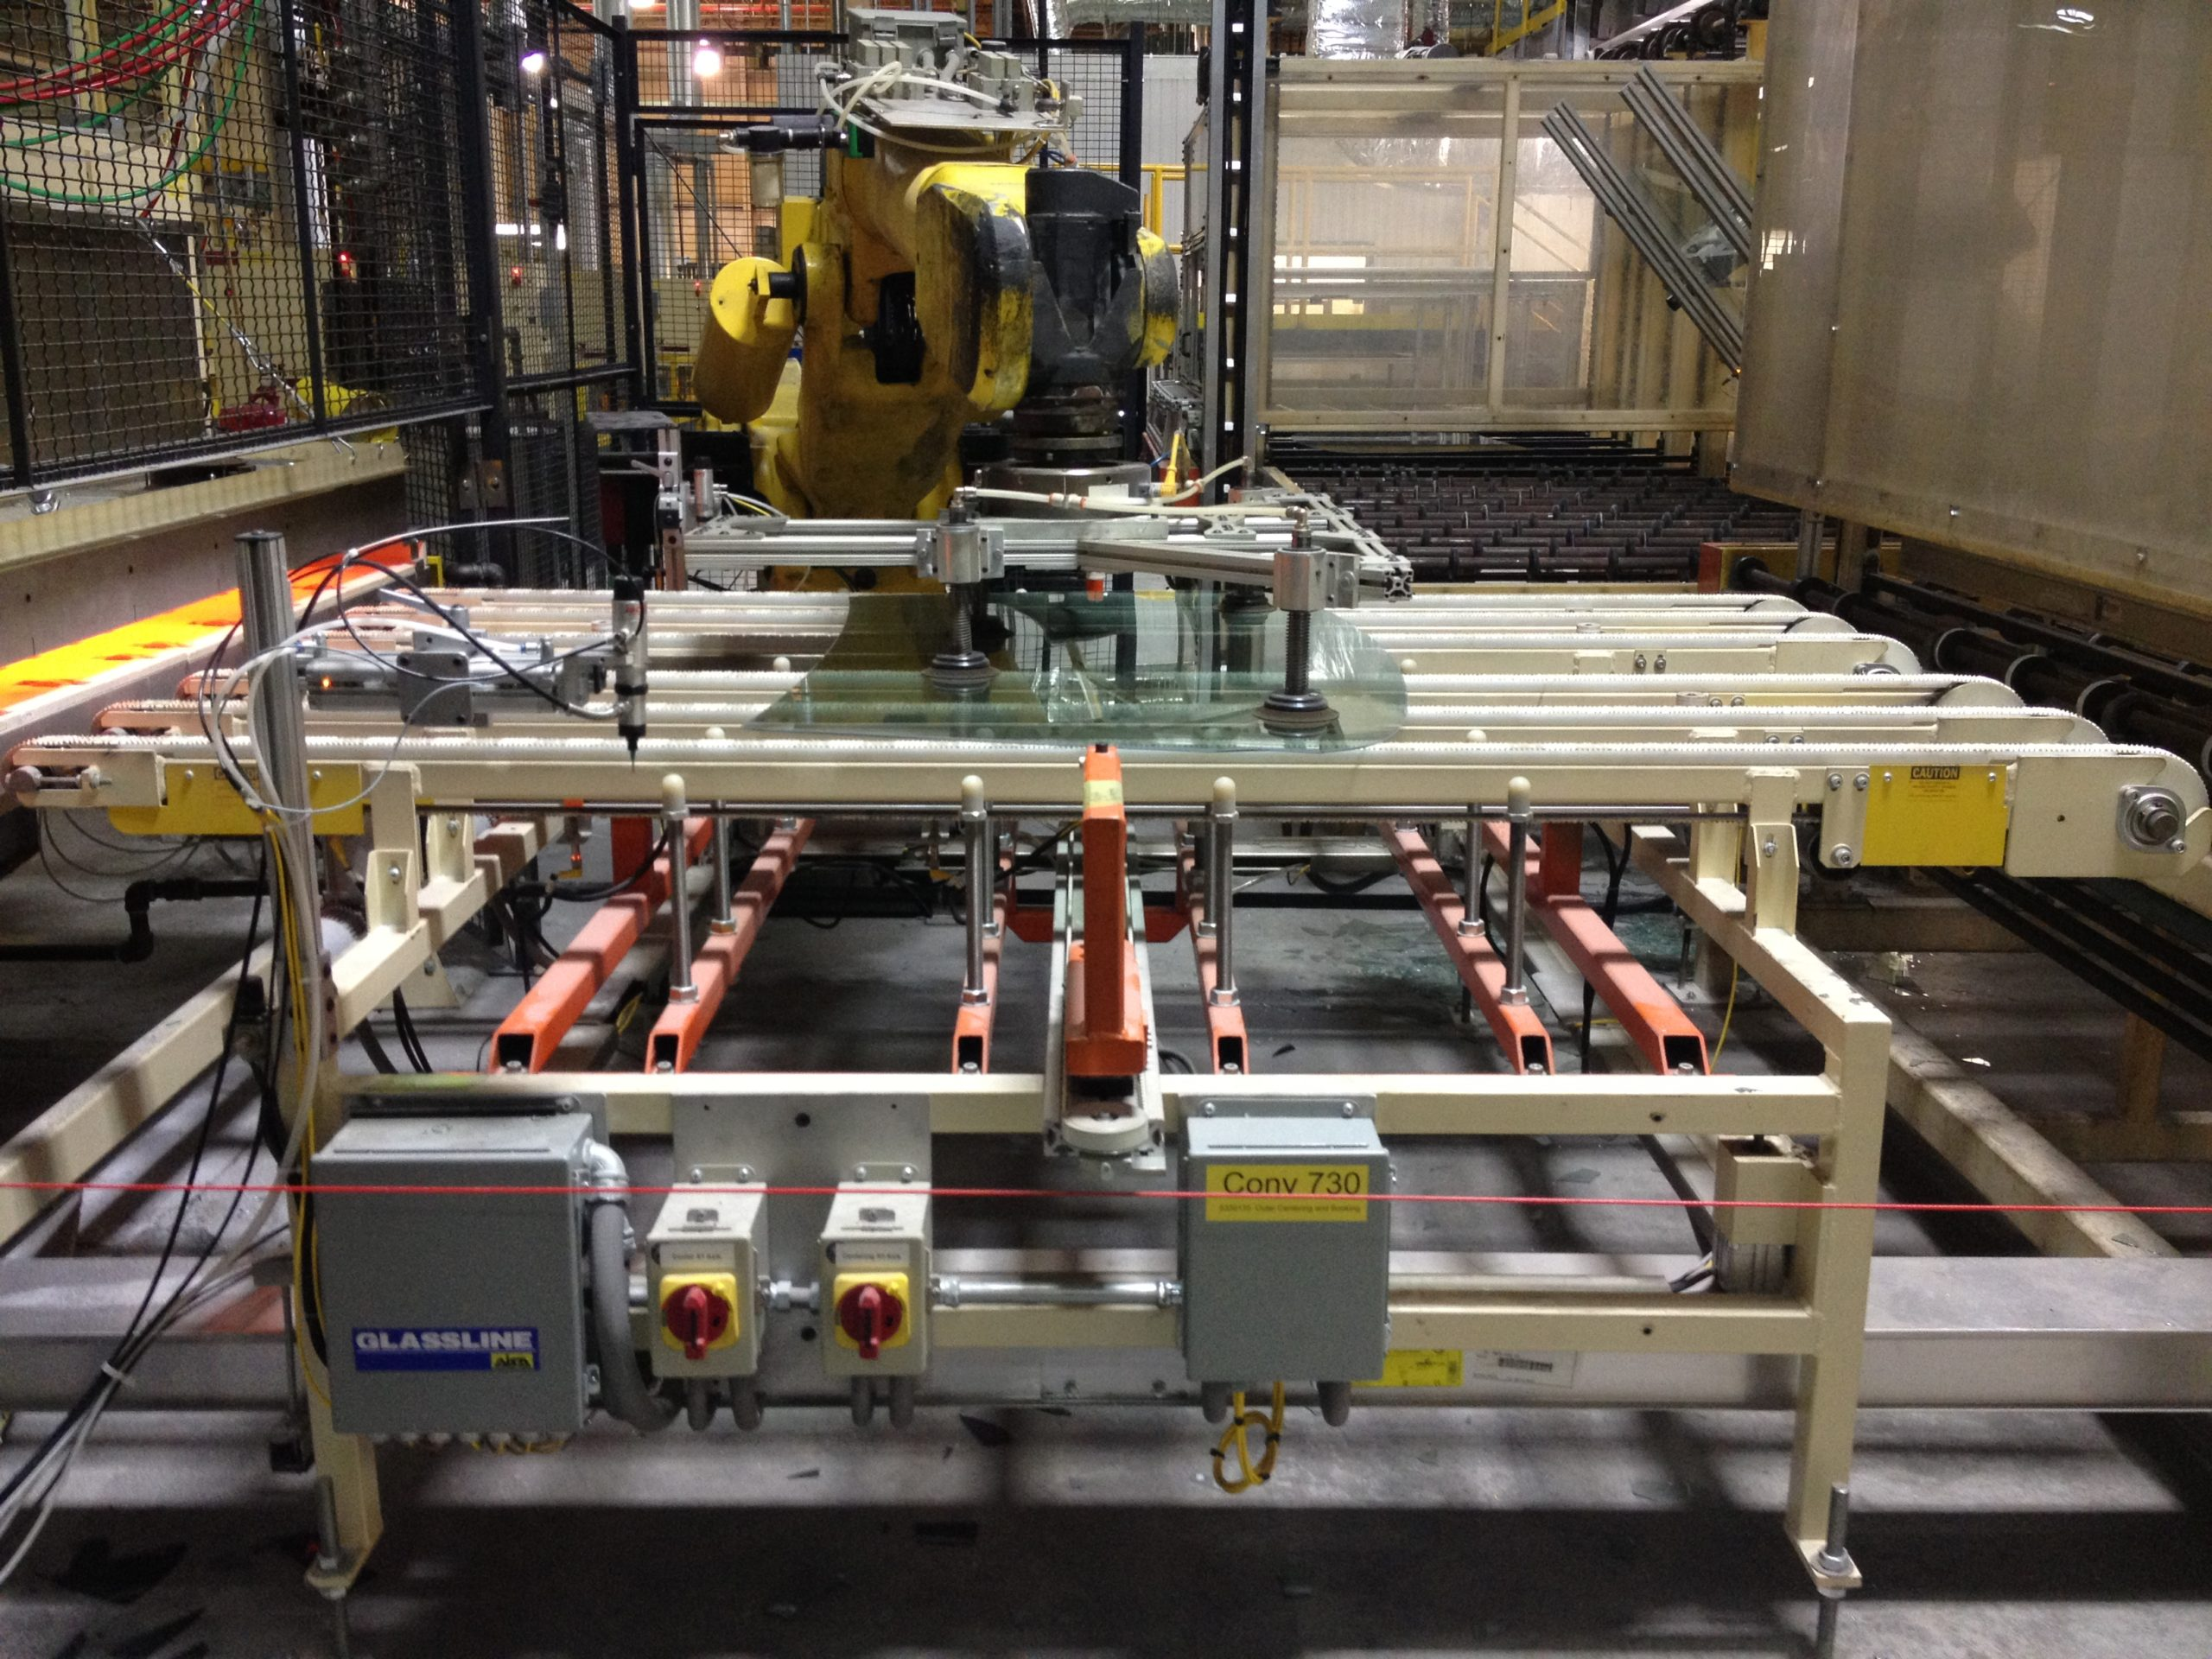 Squaring and Centering Stations(flat and bent glass) - Glassline 2